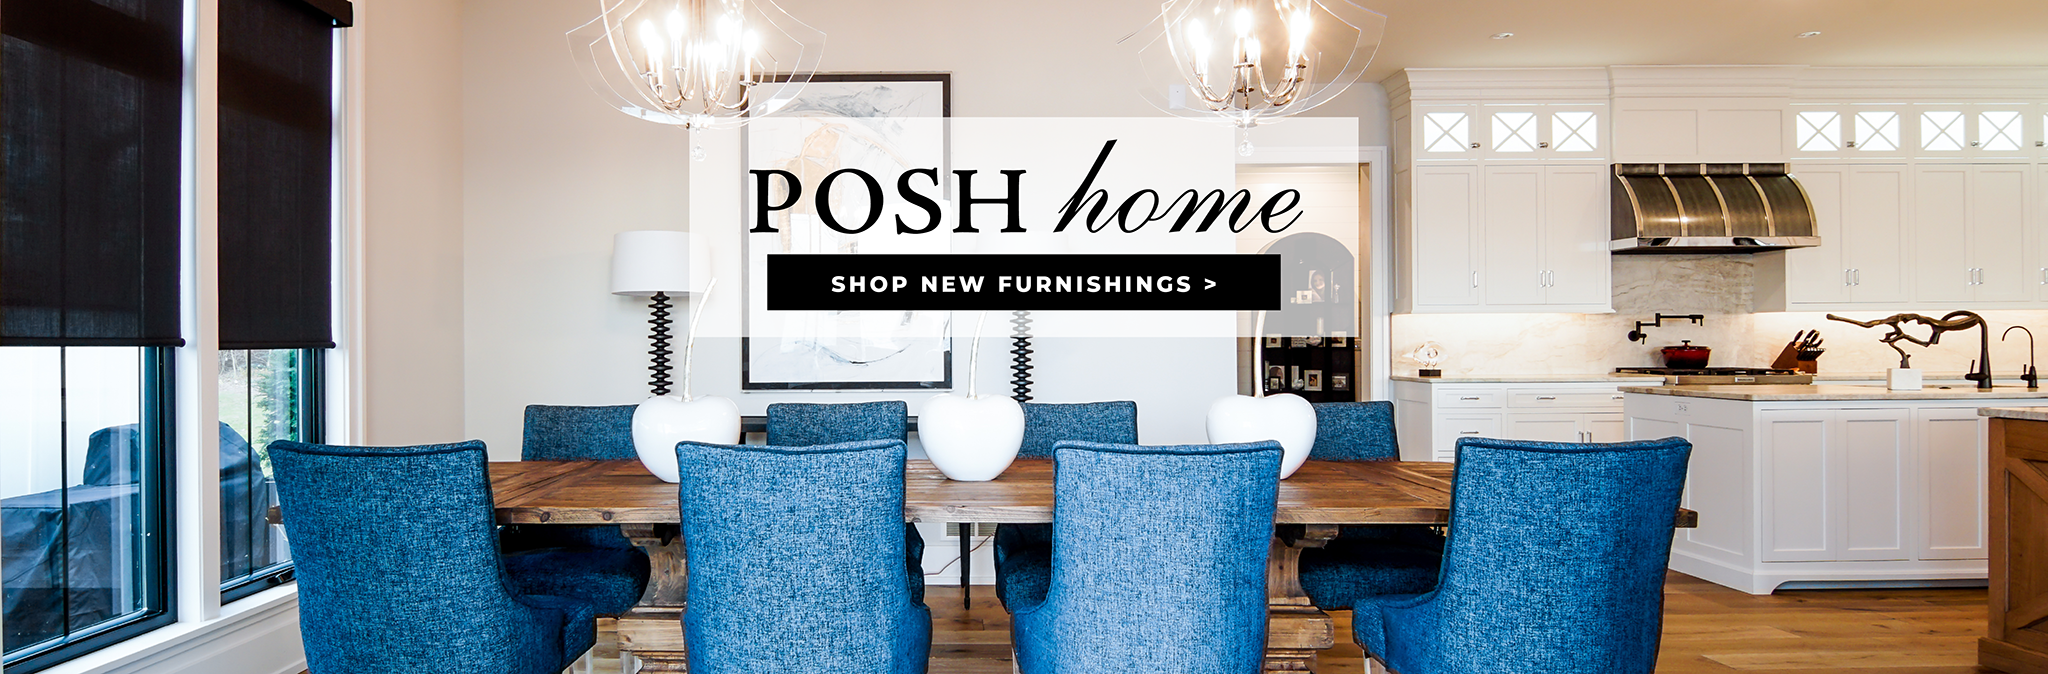 Posh Home Shop New Home Furnishings from Laura of Pembroke